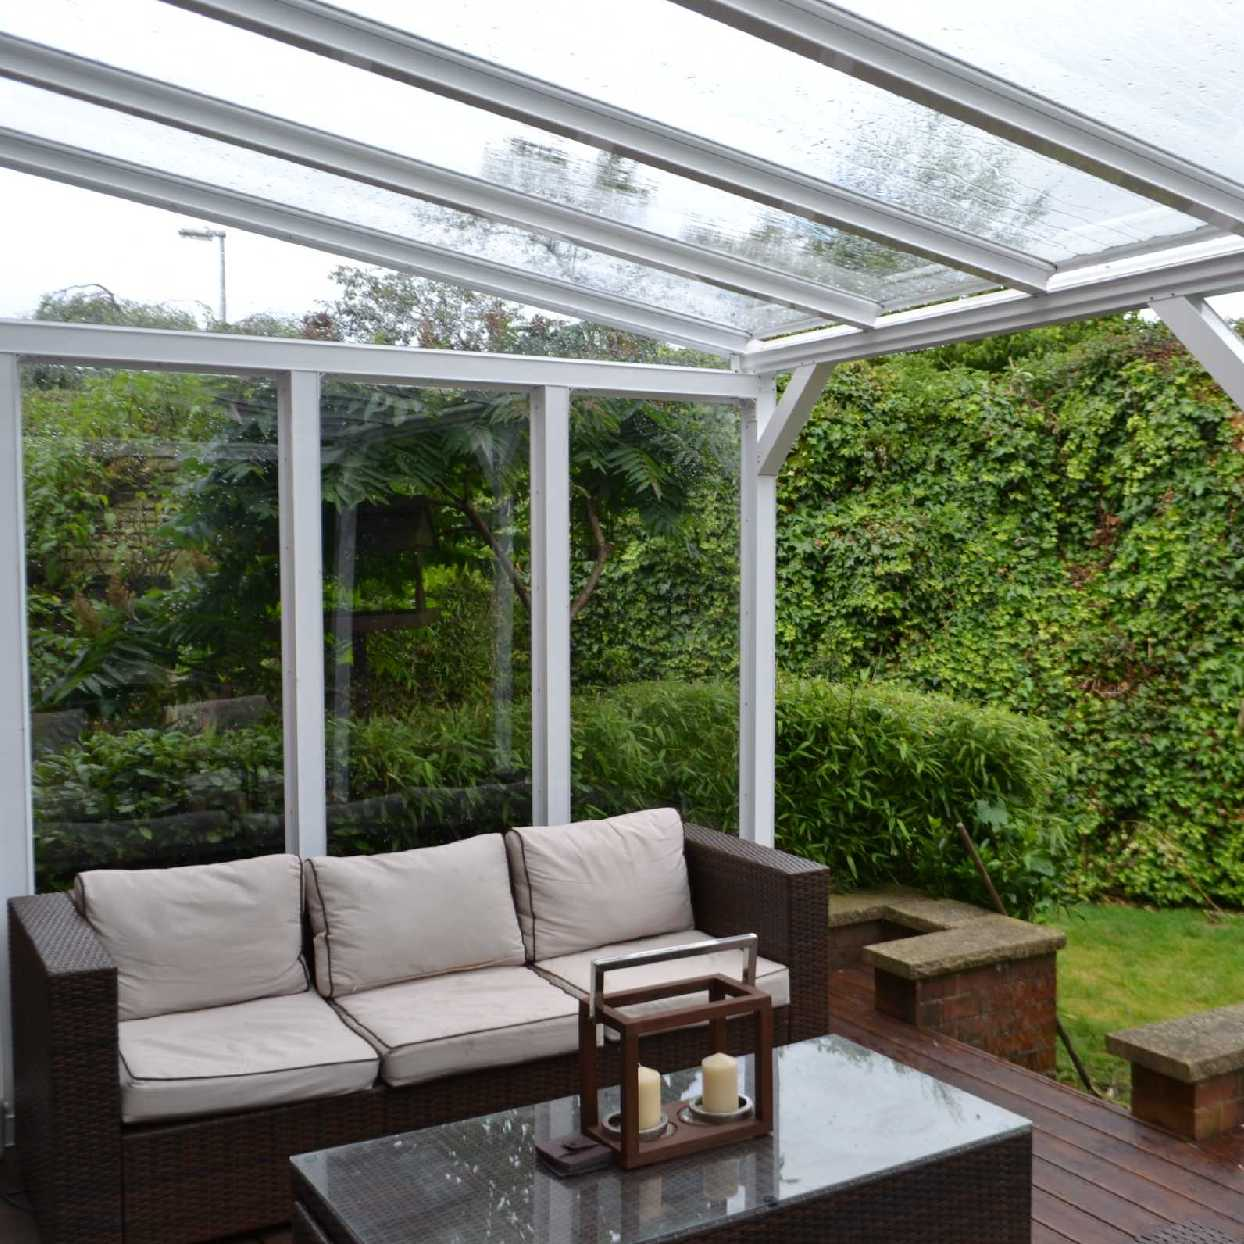 Great selection of Omega Smart Lean-To Canopy with 16mm Polycarbonate Glazing - 12.0m (W) x 3.0m (P), (5) Supporting Posts